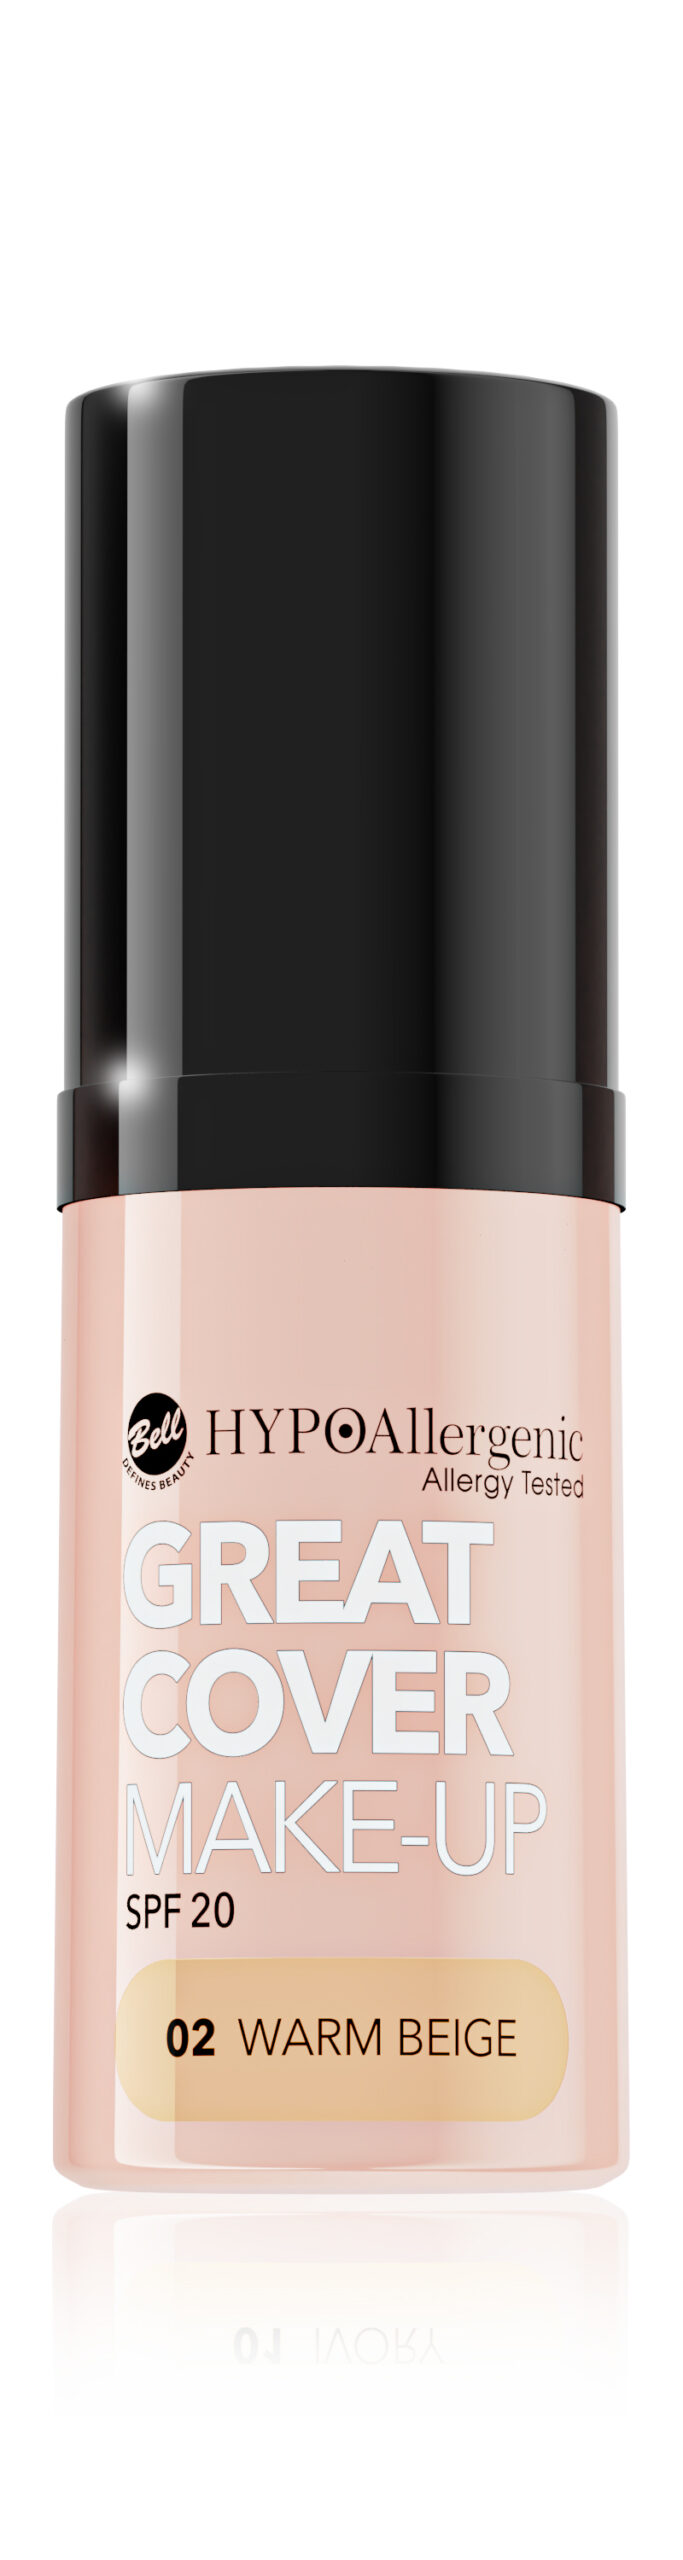 HYPOAllergenic Great Cover Make-Up SPF 20